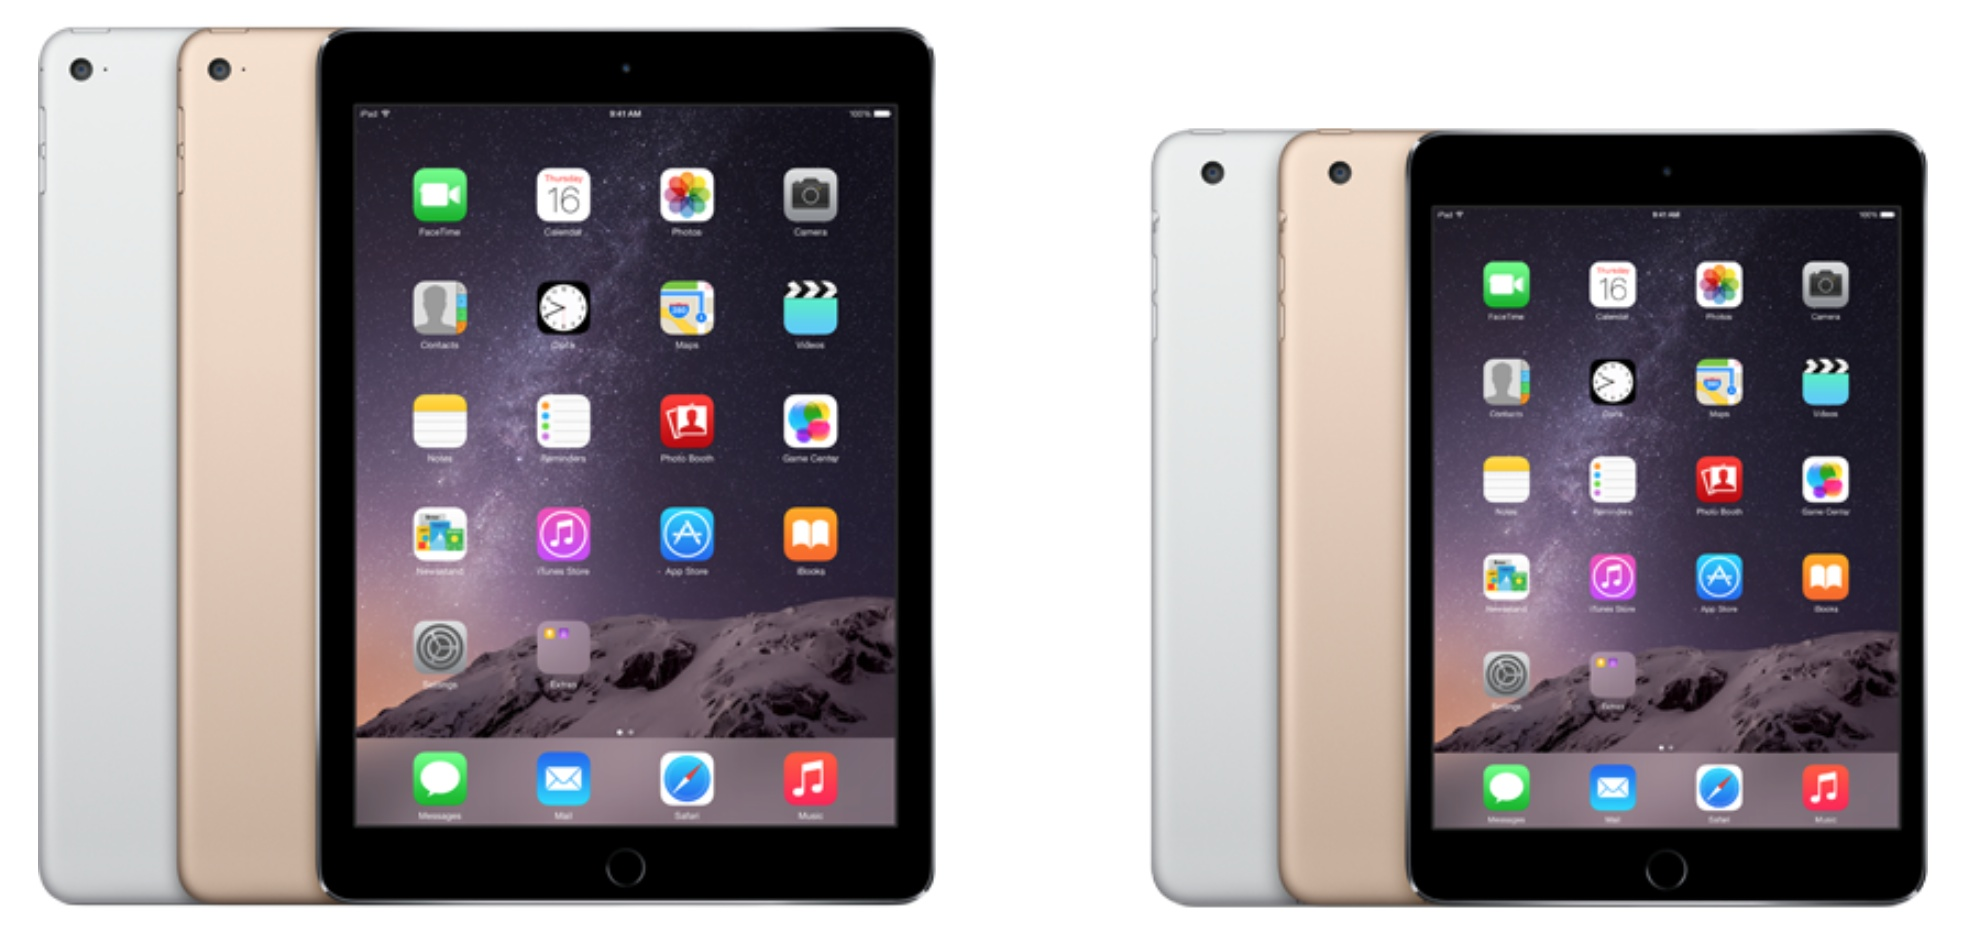 iPad Air 2 next to iPad mini 3